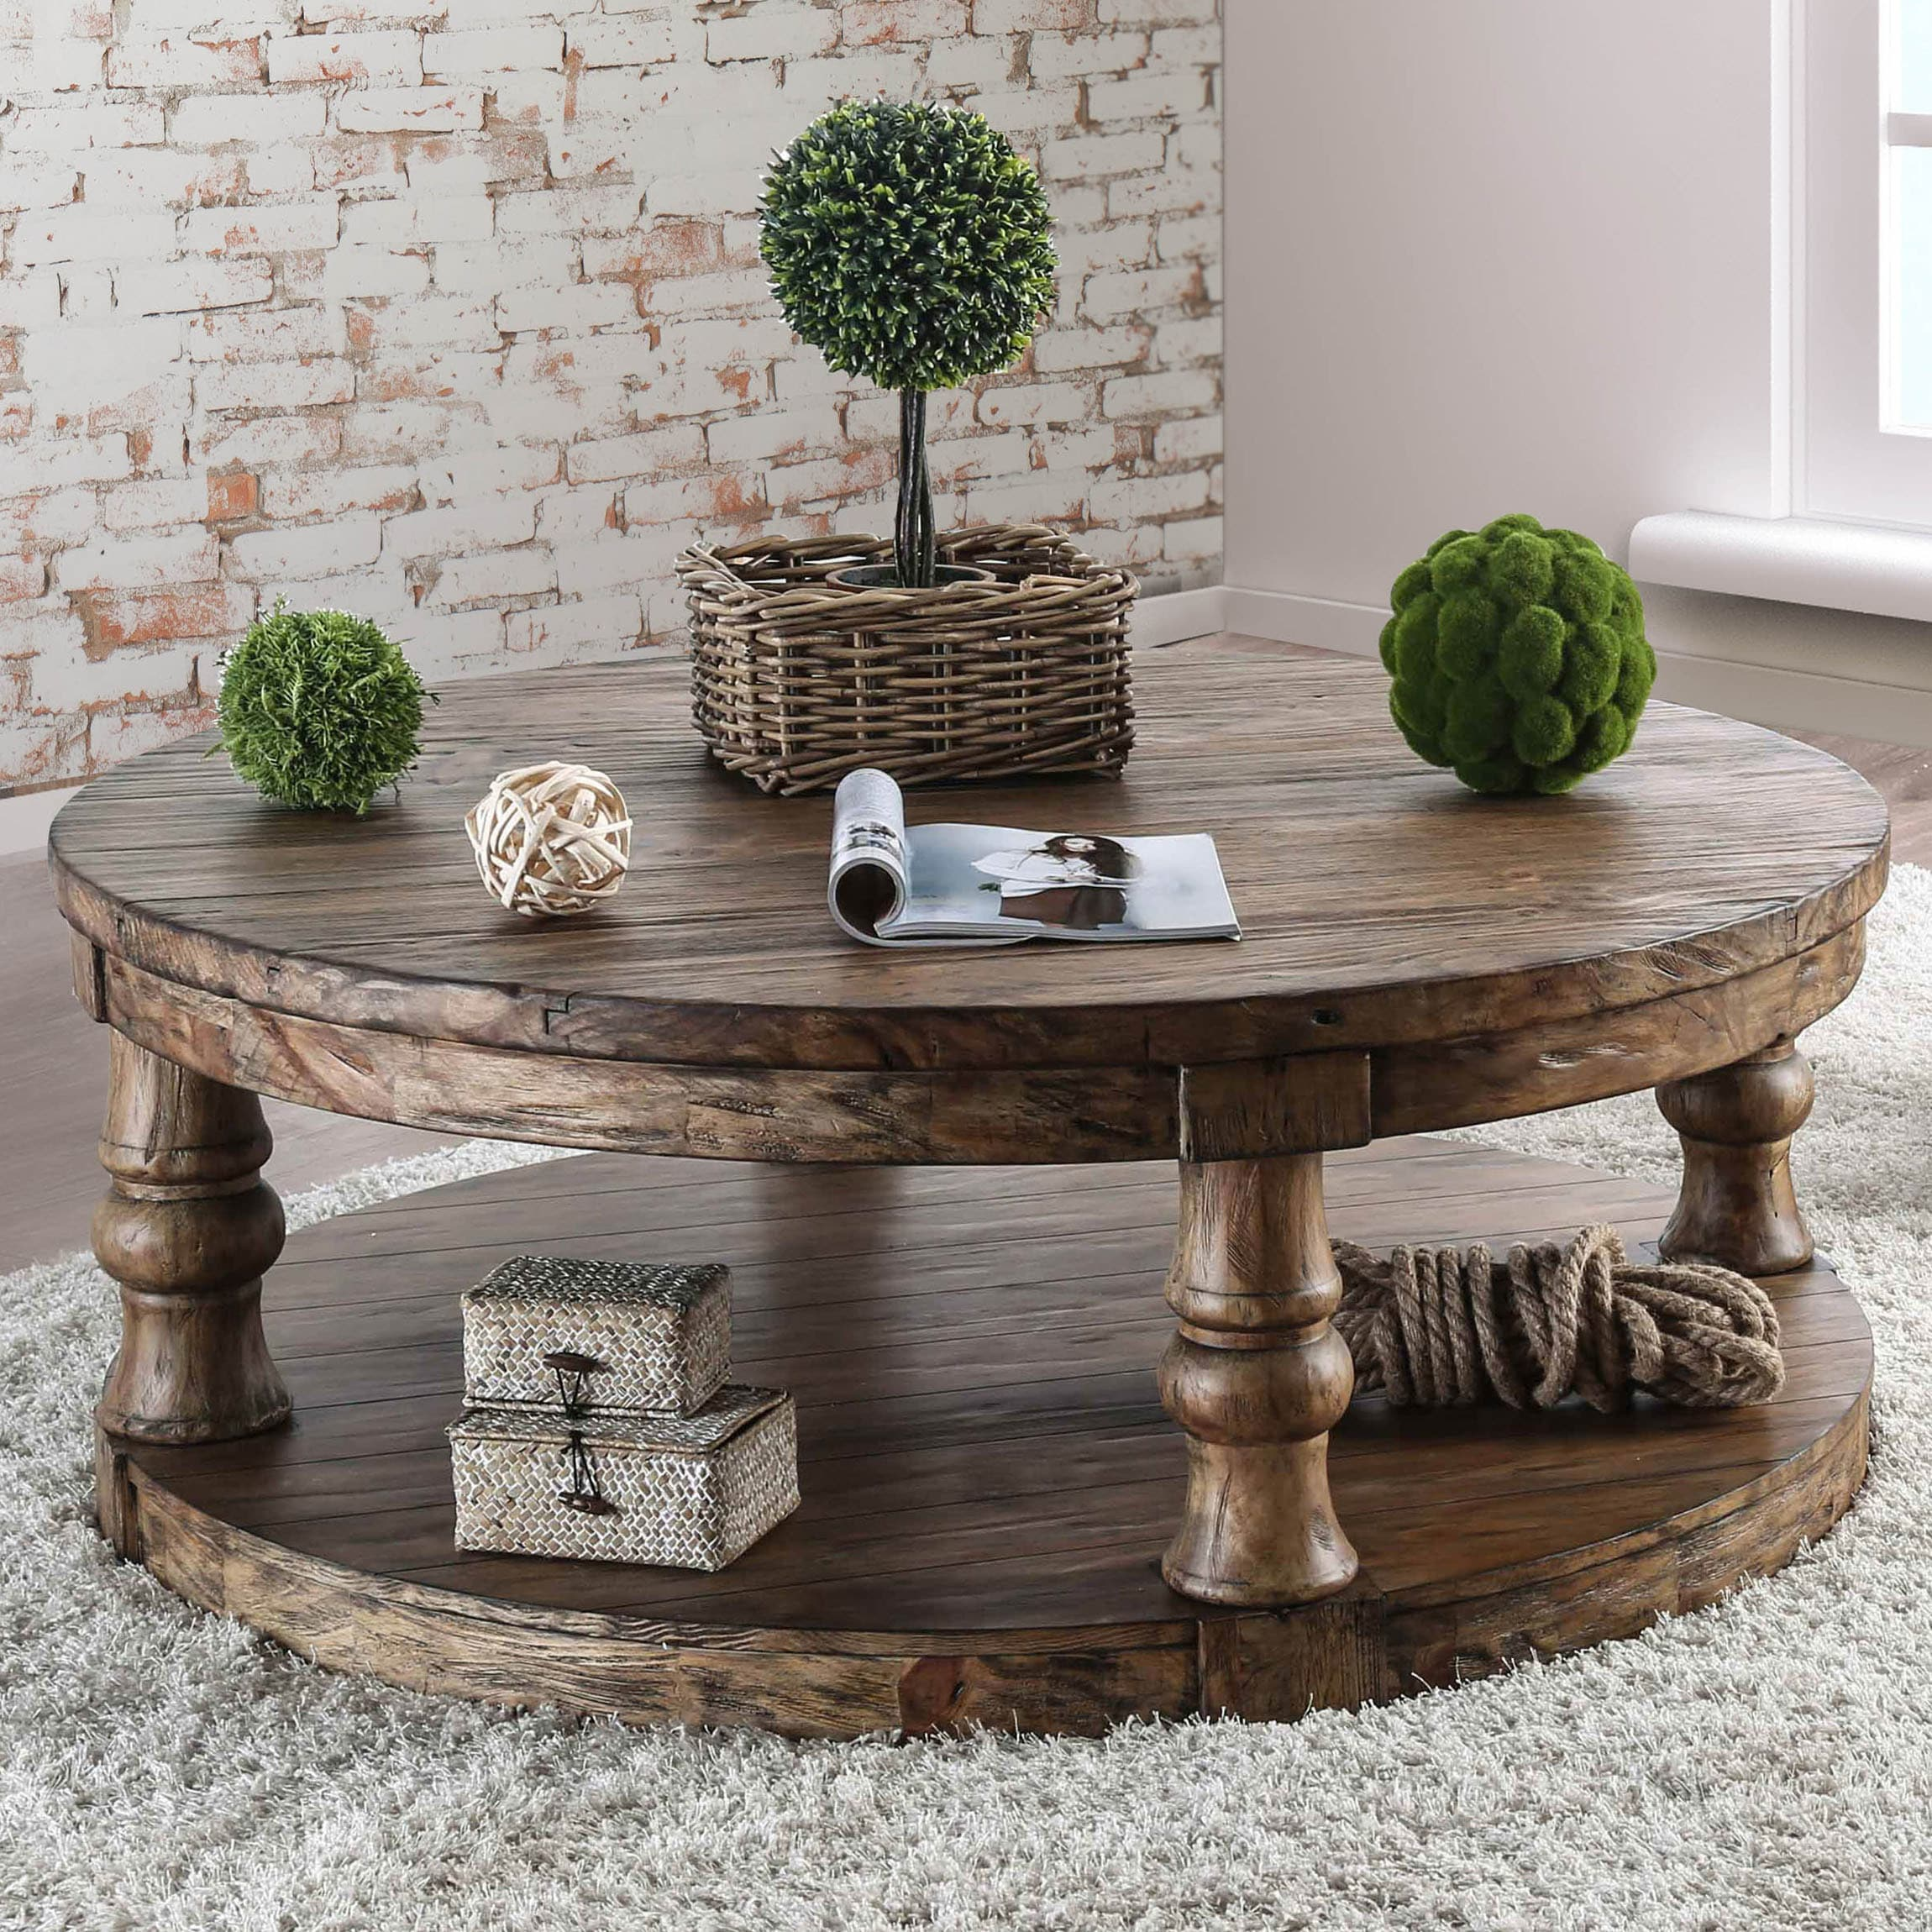 Round Coffee Table Images 2